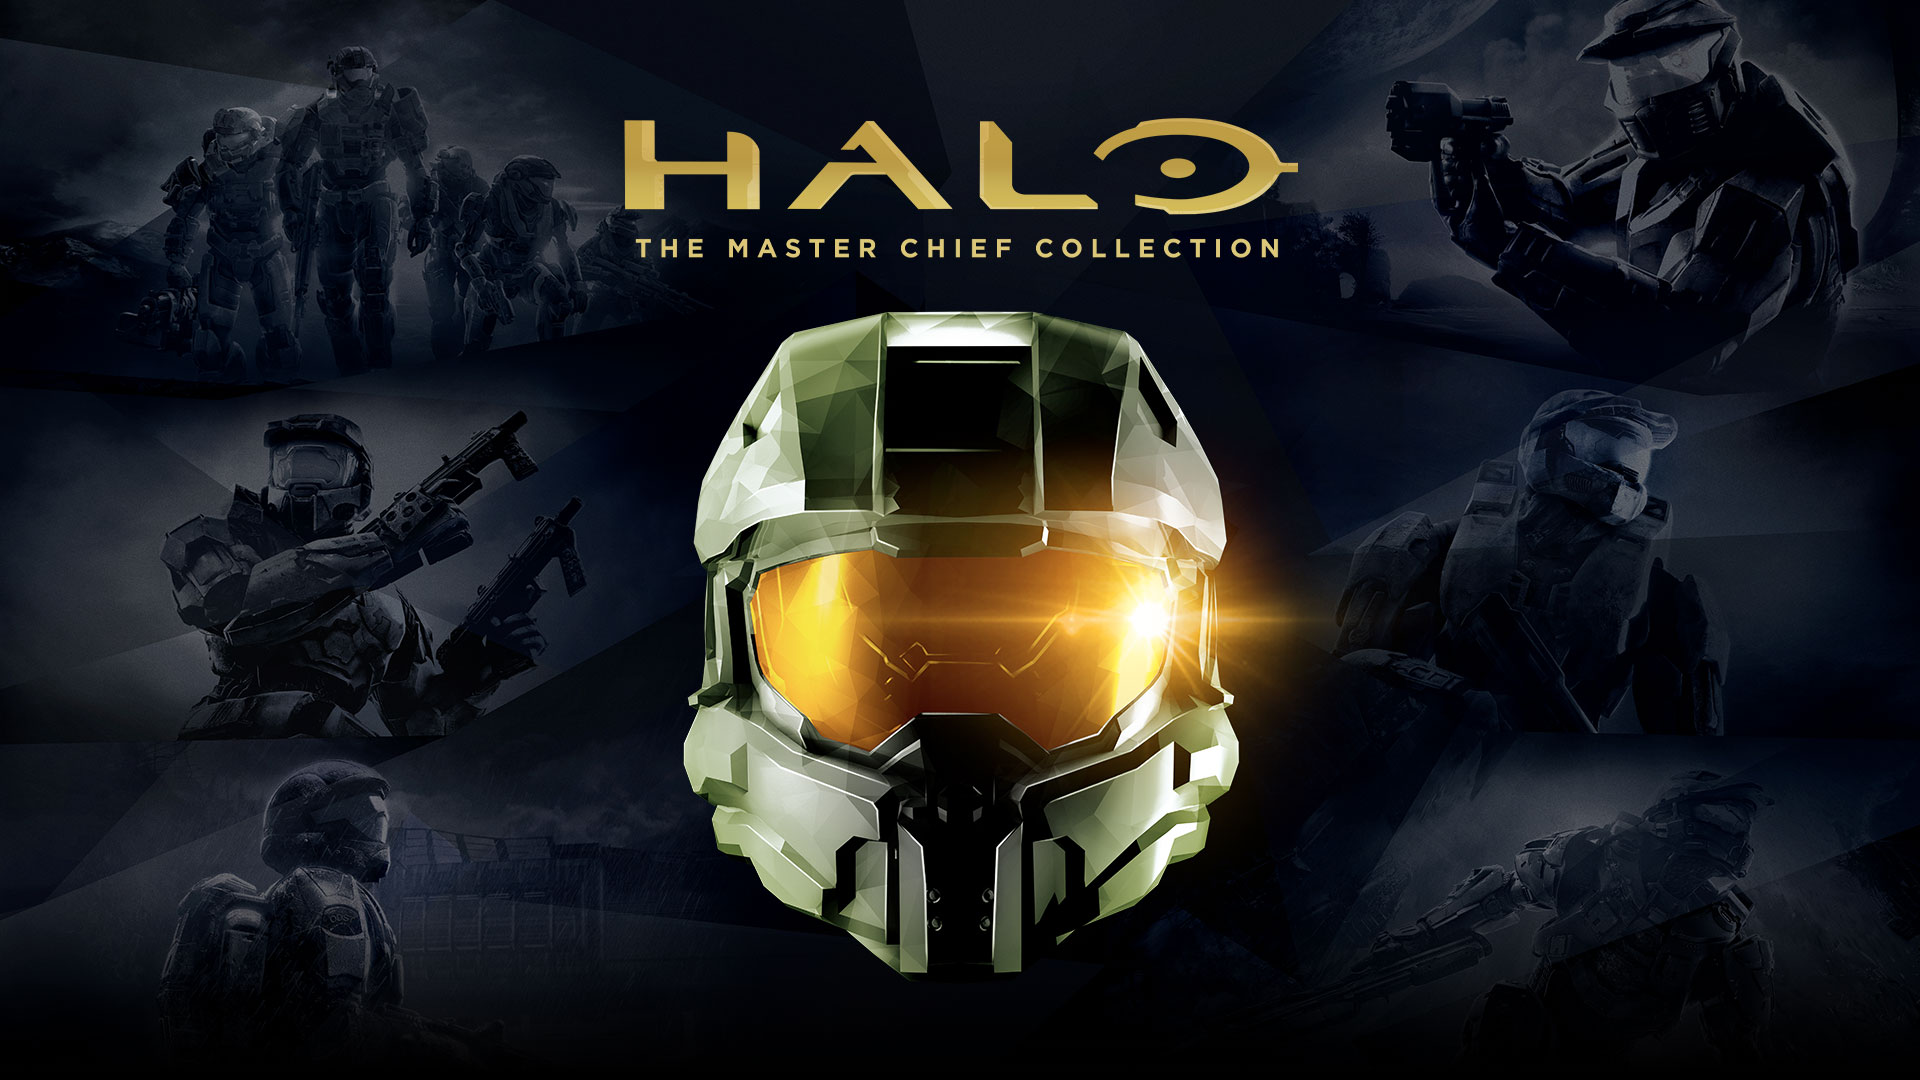 Halo The Master Chief Collection, Master Chief helmet against transparent background of Halo box shots